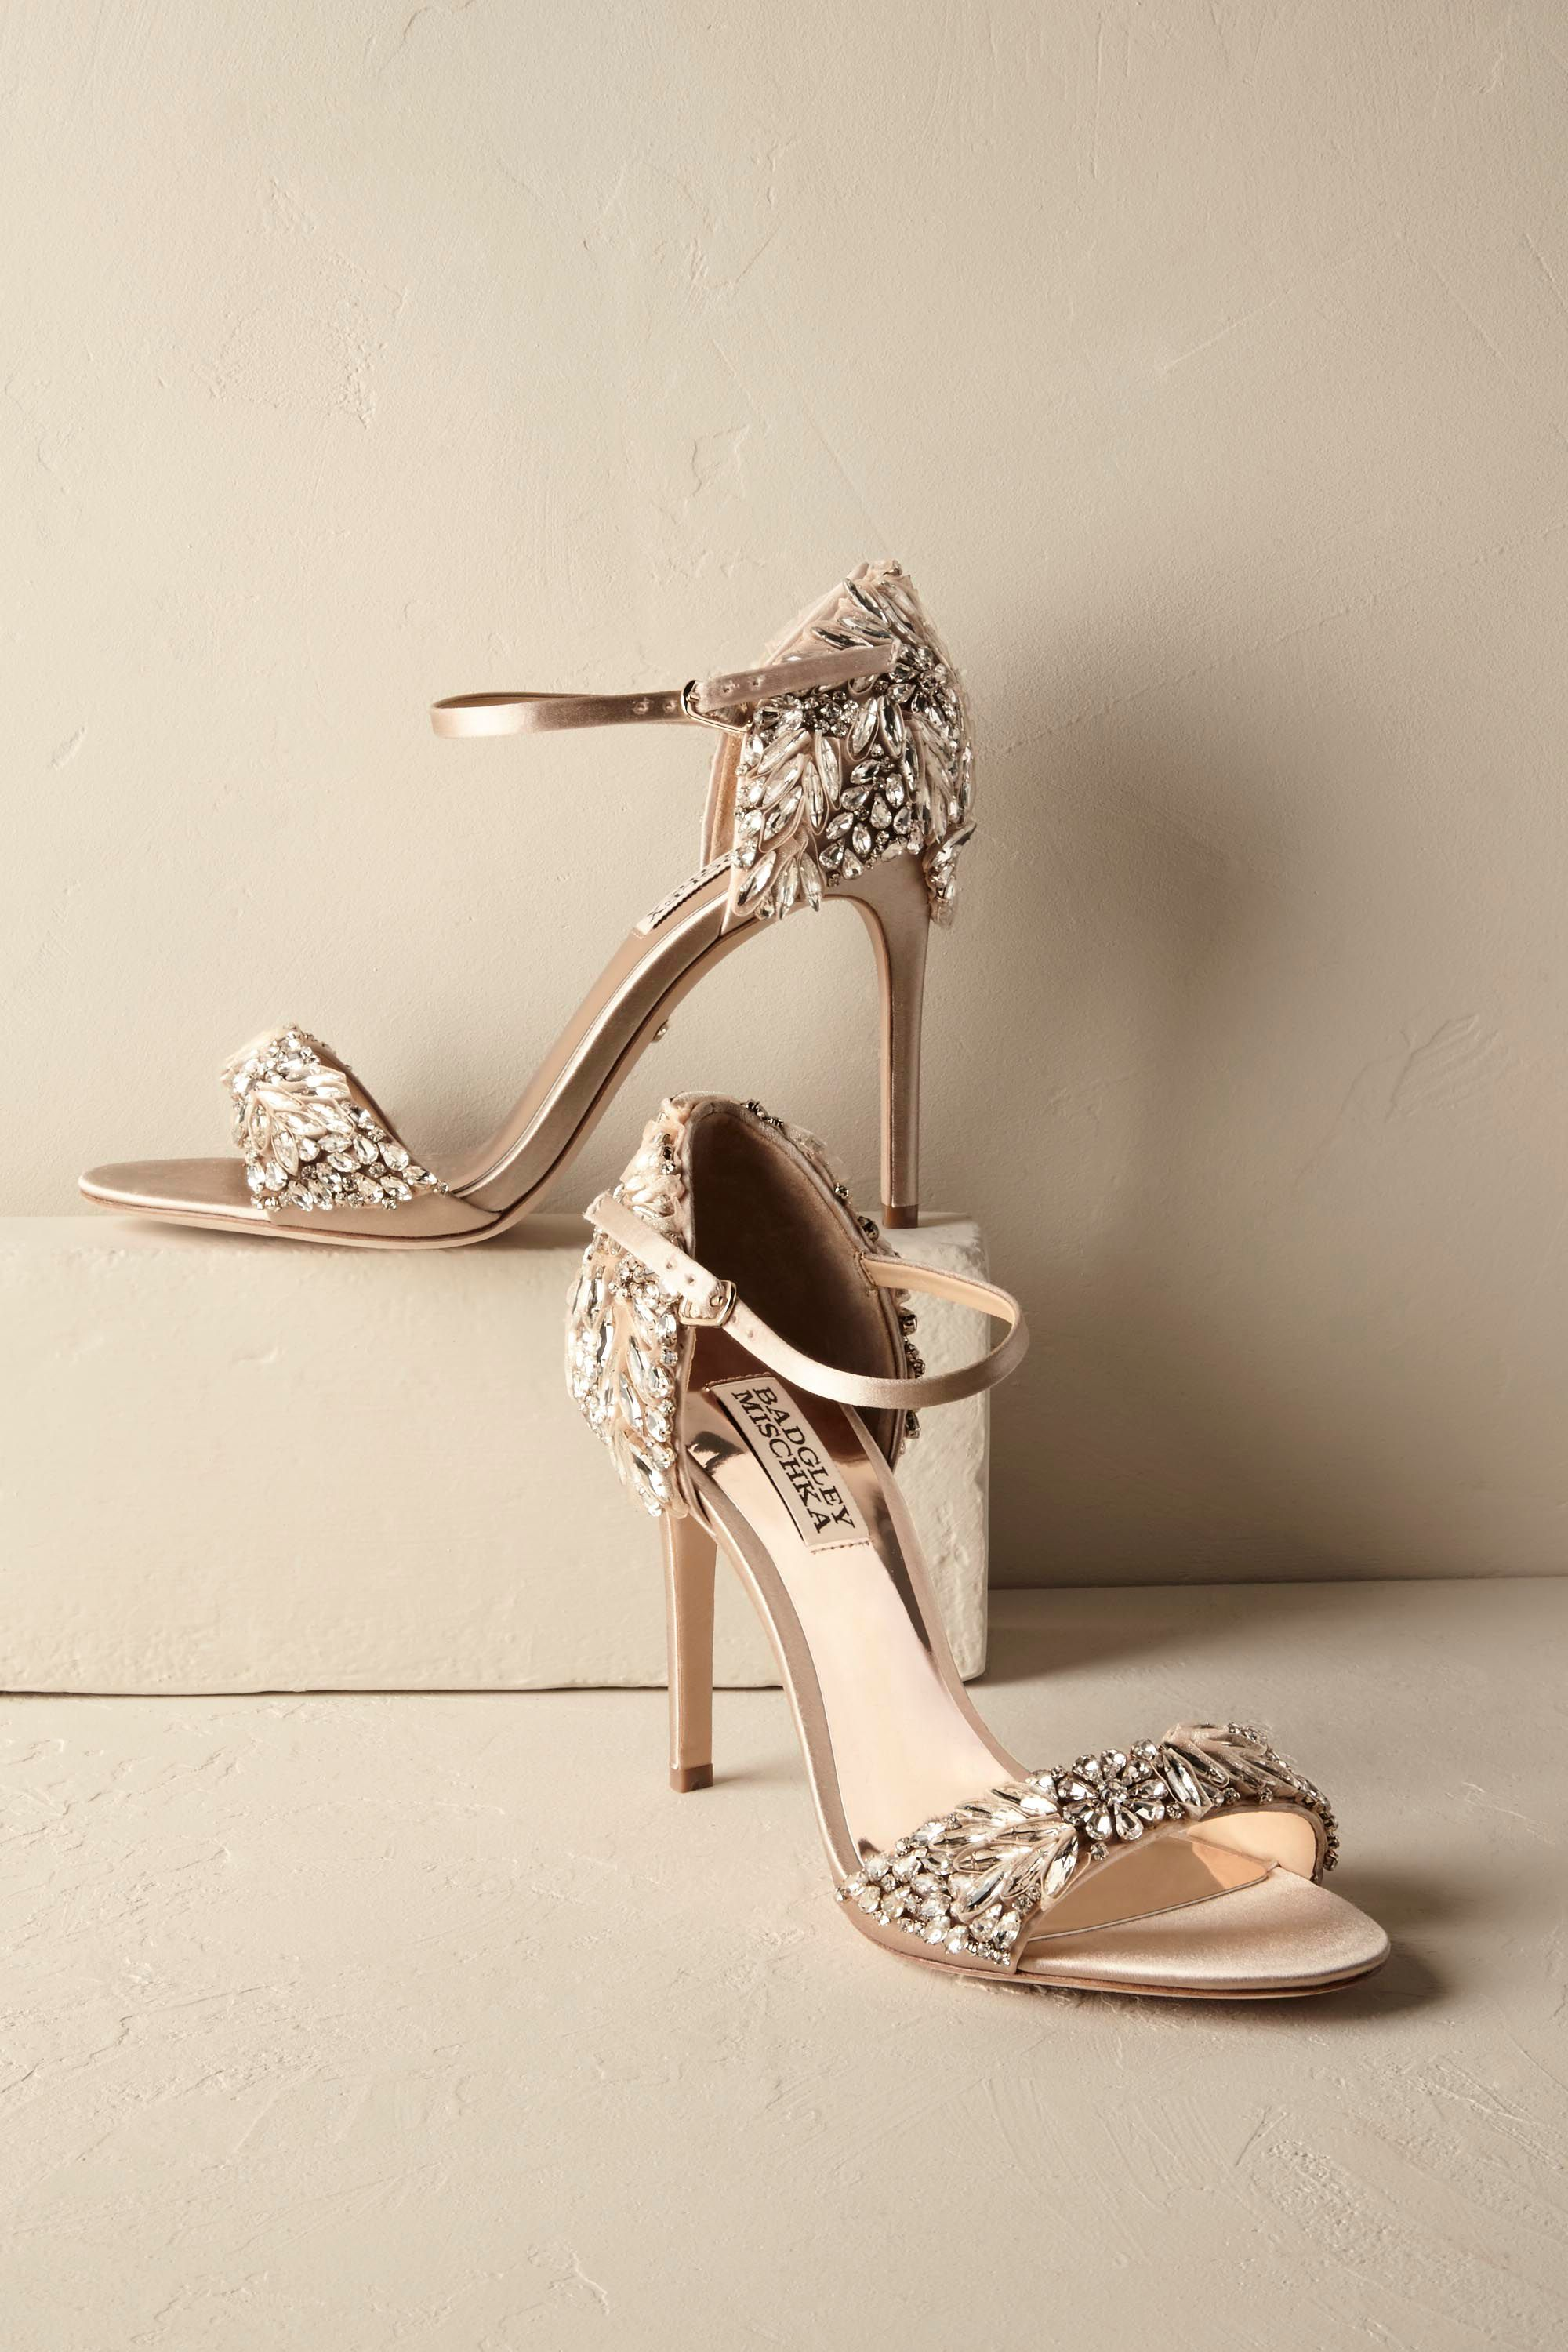 shop the bride bridal shoes wedding sandals for bride Dalle Heels